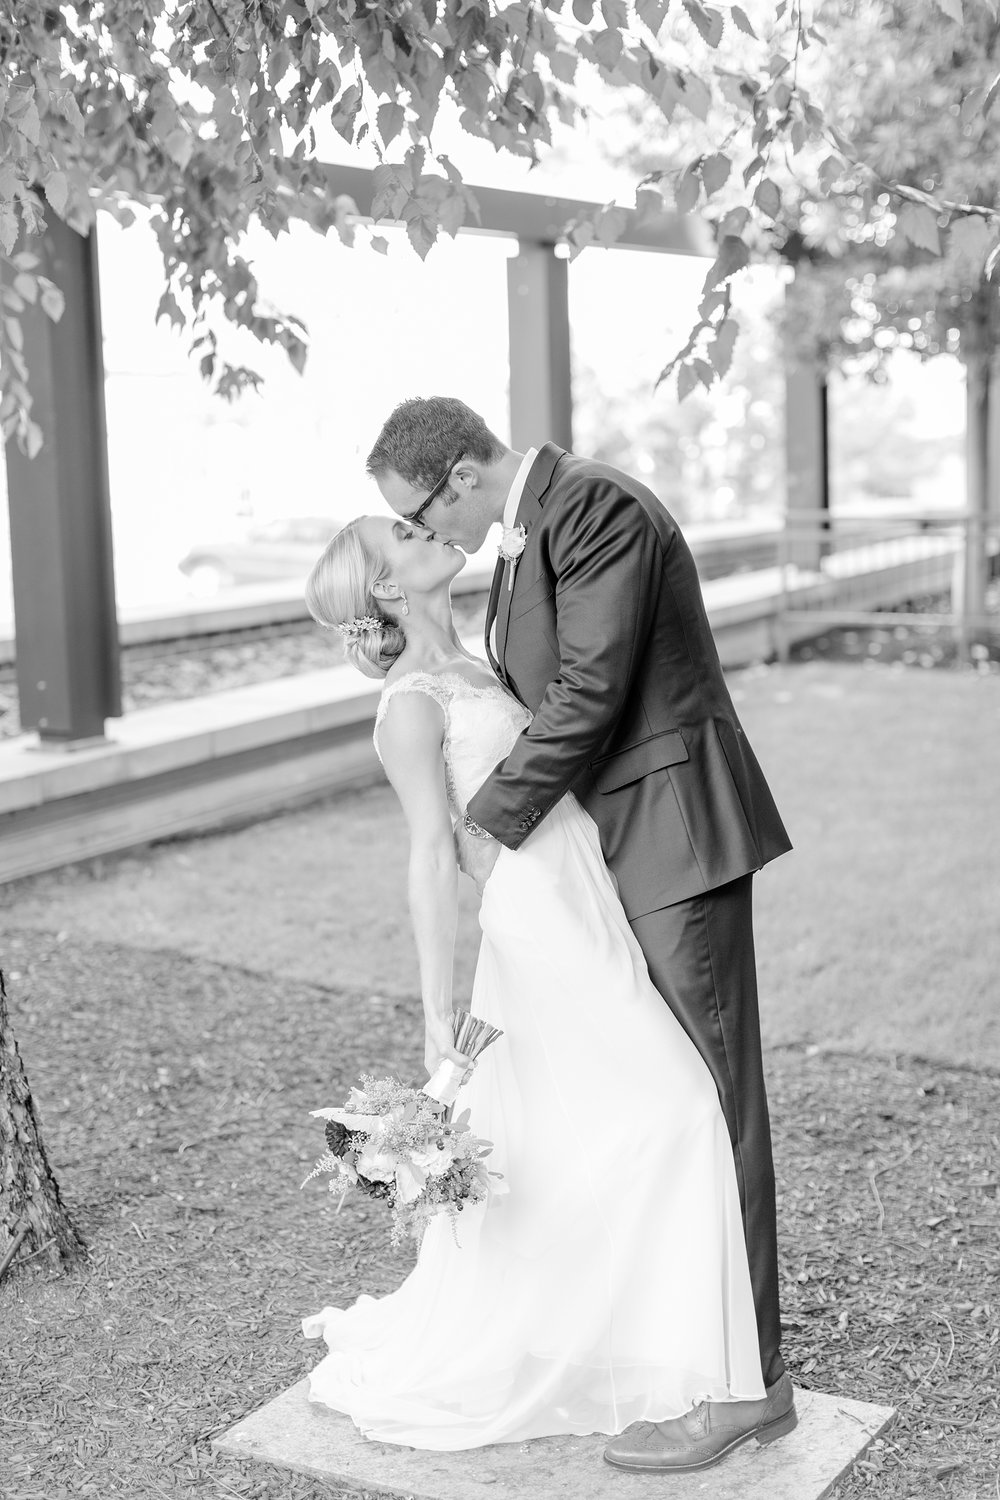 McAnelly 3. Bride & Groom Portraits-261_anna grace photography georgetown virginia wedding photographer ritz carlton wedding photo.jpg